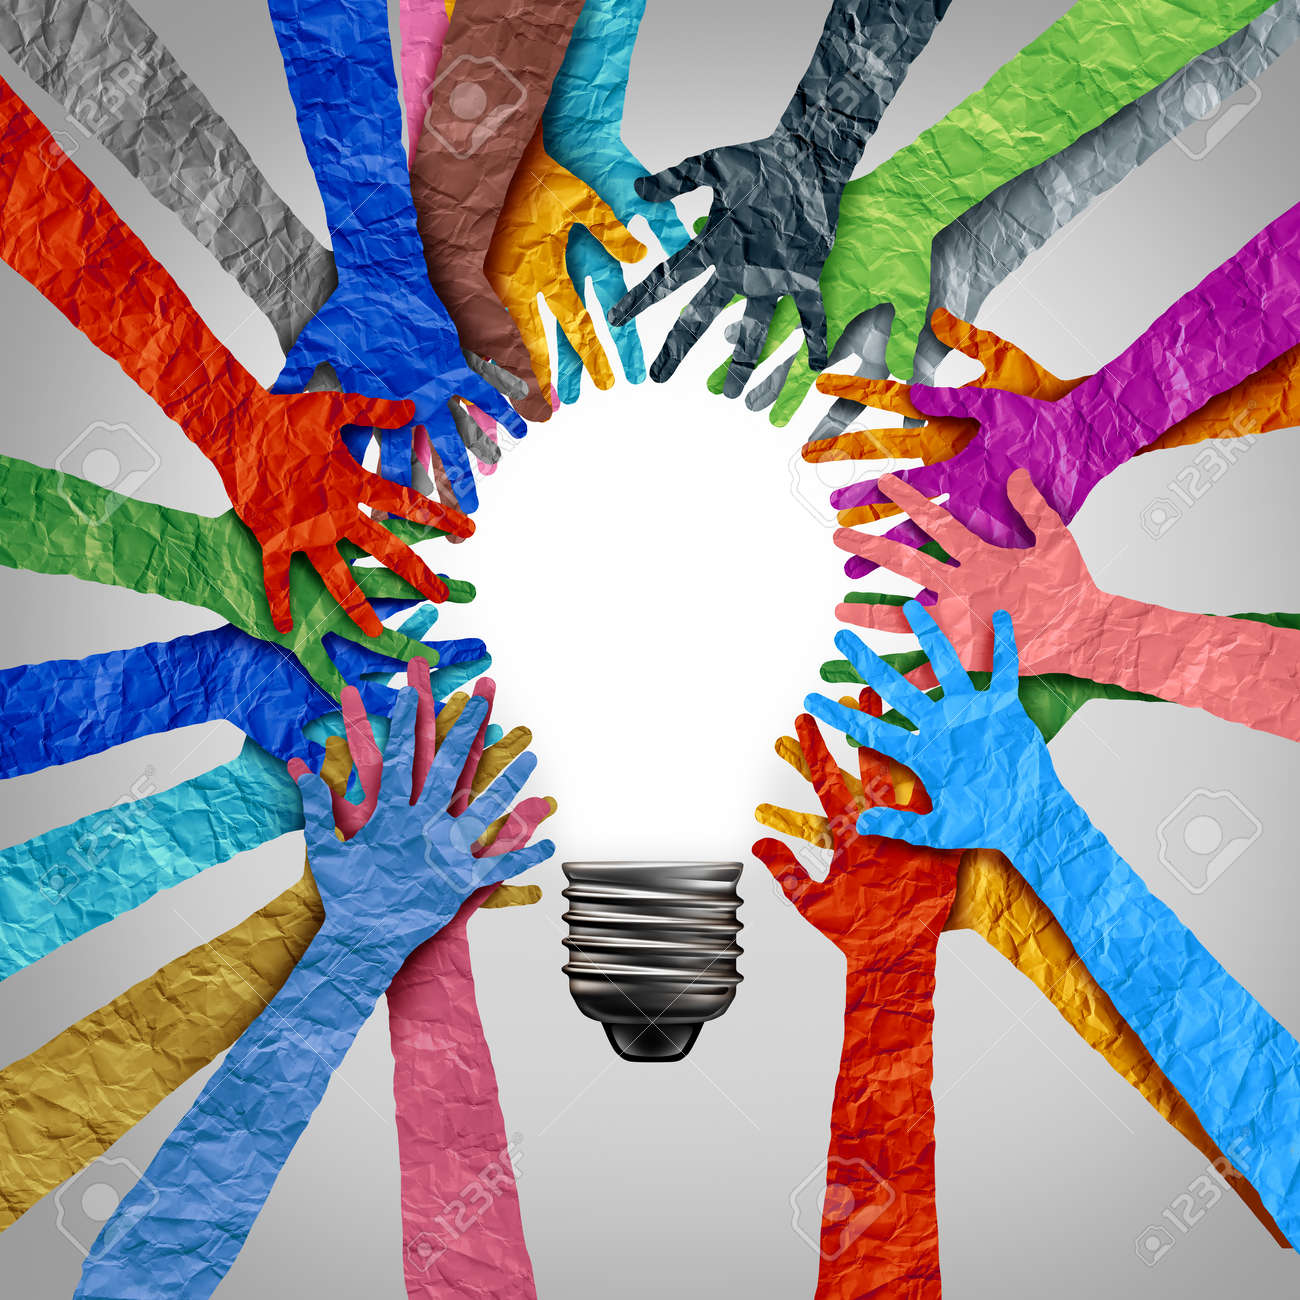 Global diversity ideas and diverse society thinking together as a team or a group of people uniting together joining hands into the shape of a motivational light bulb as a community metaphor with 3D elements. - 168097203